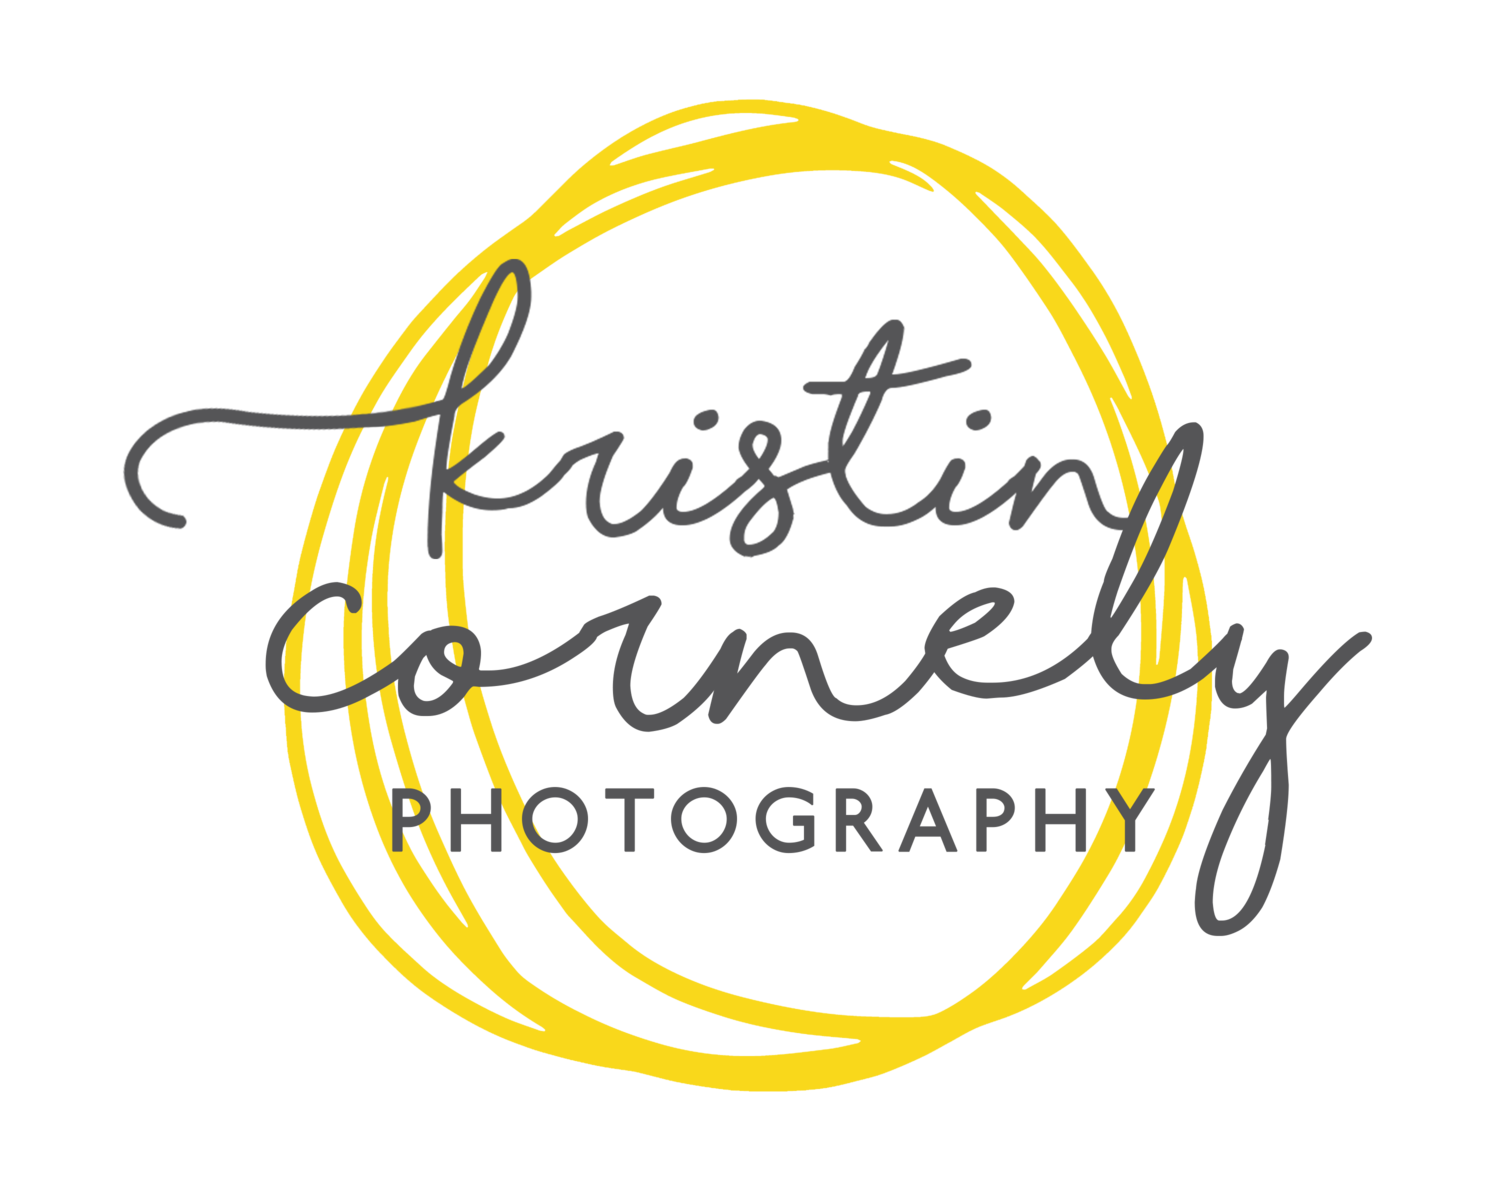 Northern VA Newborn, Maternity, and Family Photographer serving Ashburn, Leesburg, Purcellville, & Loudoun Co.